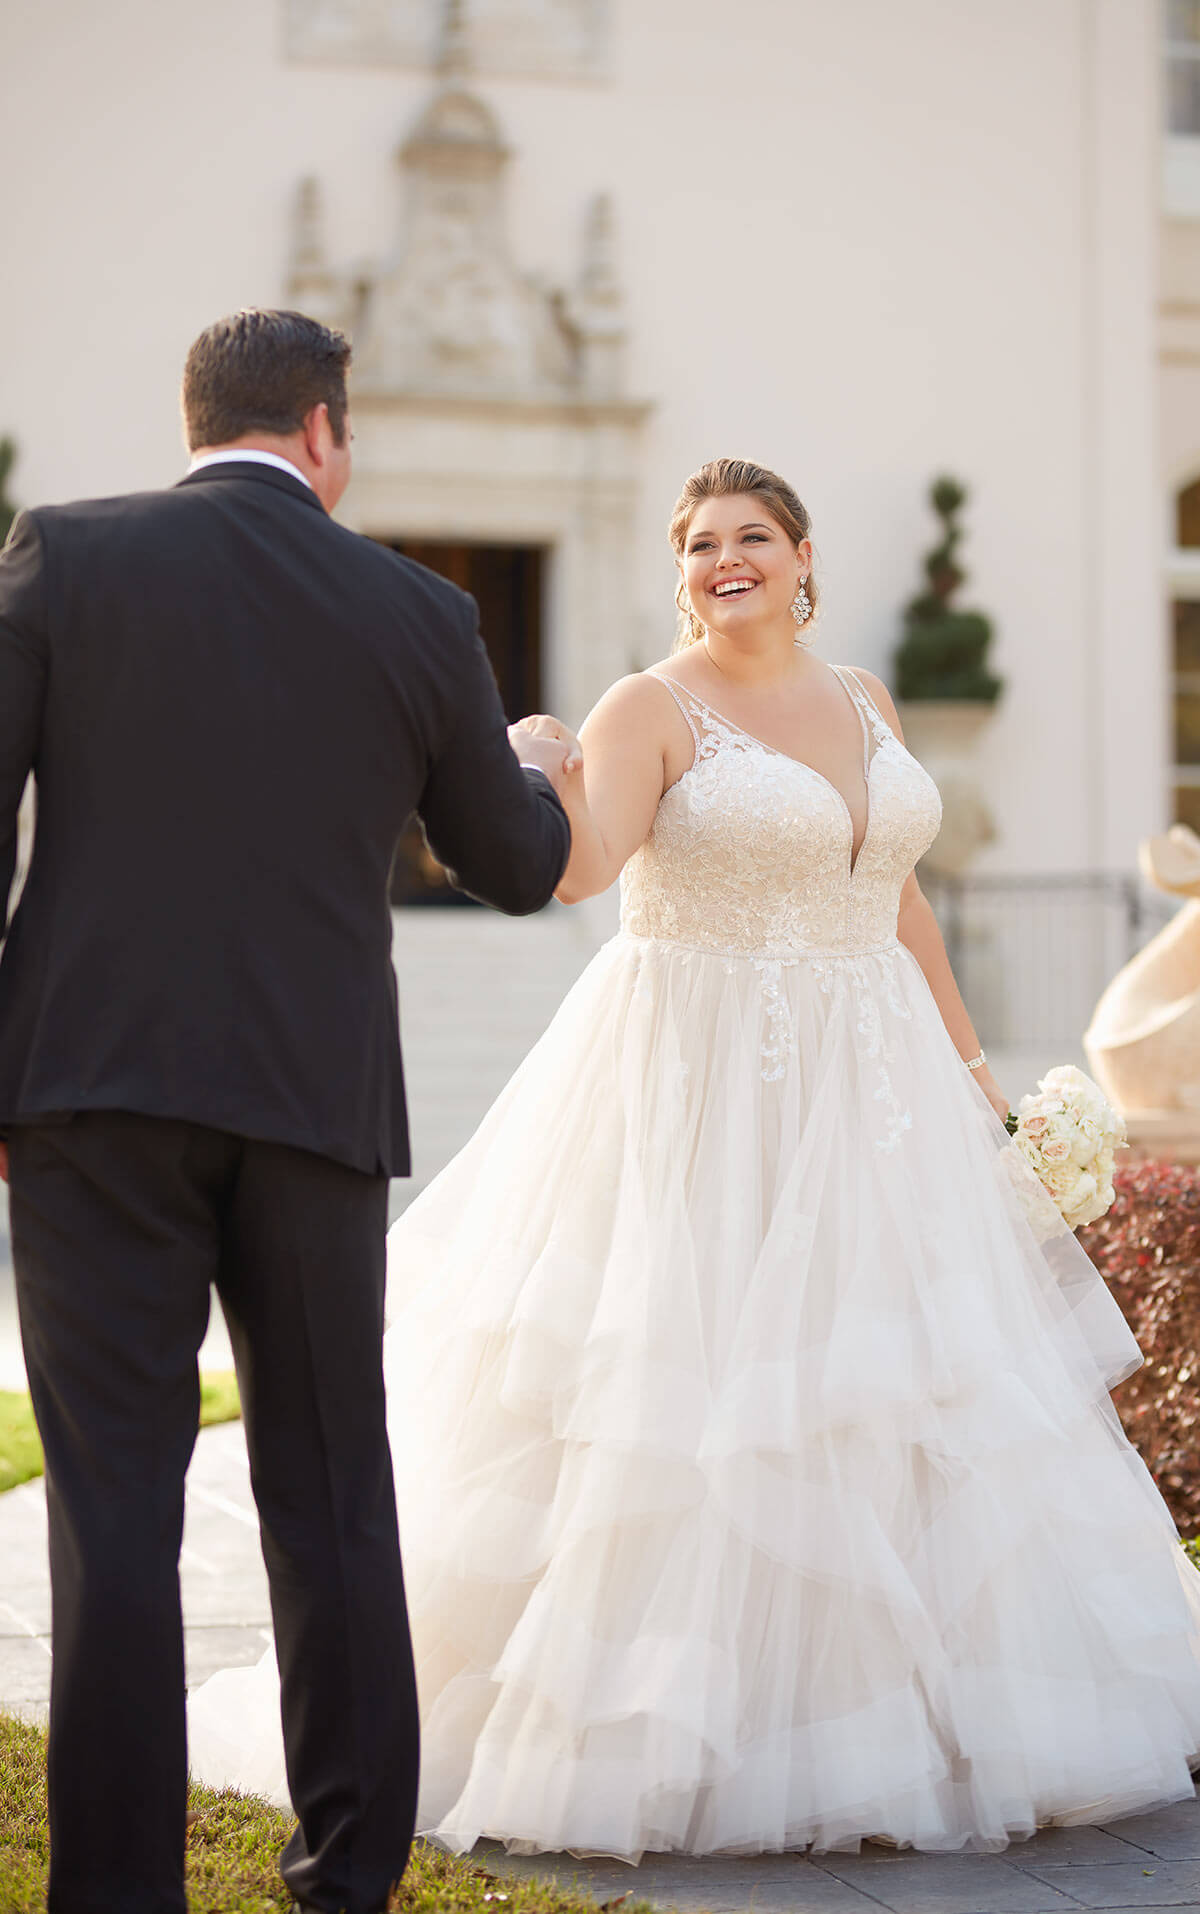 plus-sized bride in fairy tale ball gown